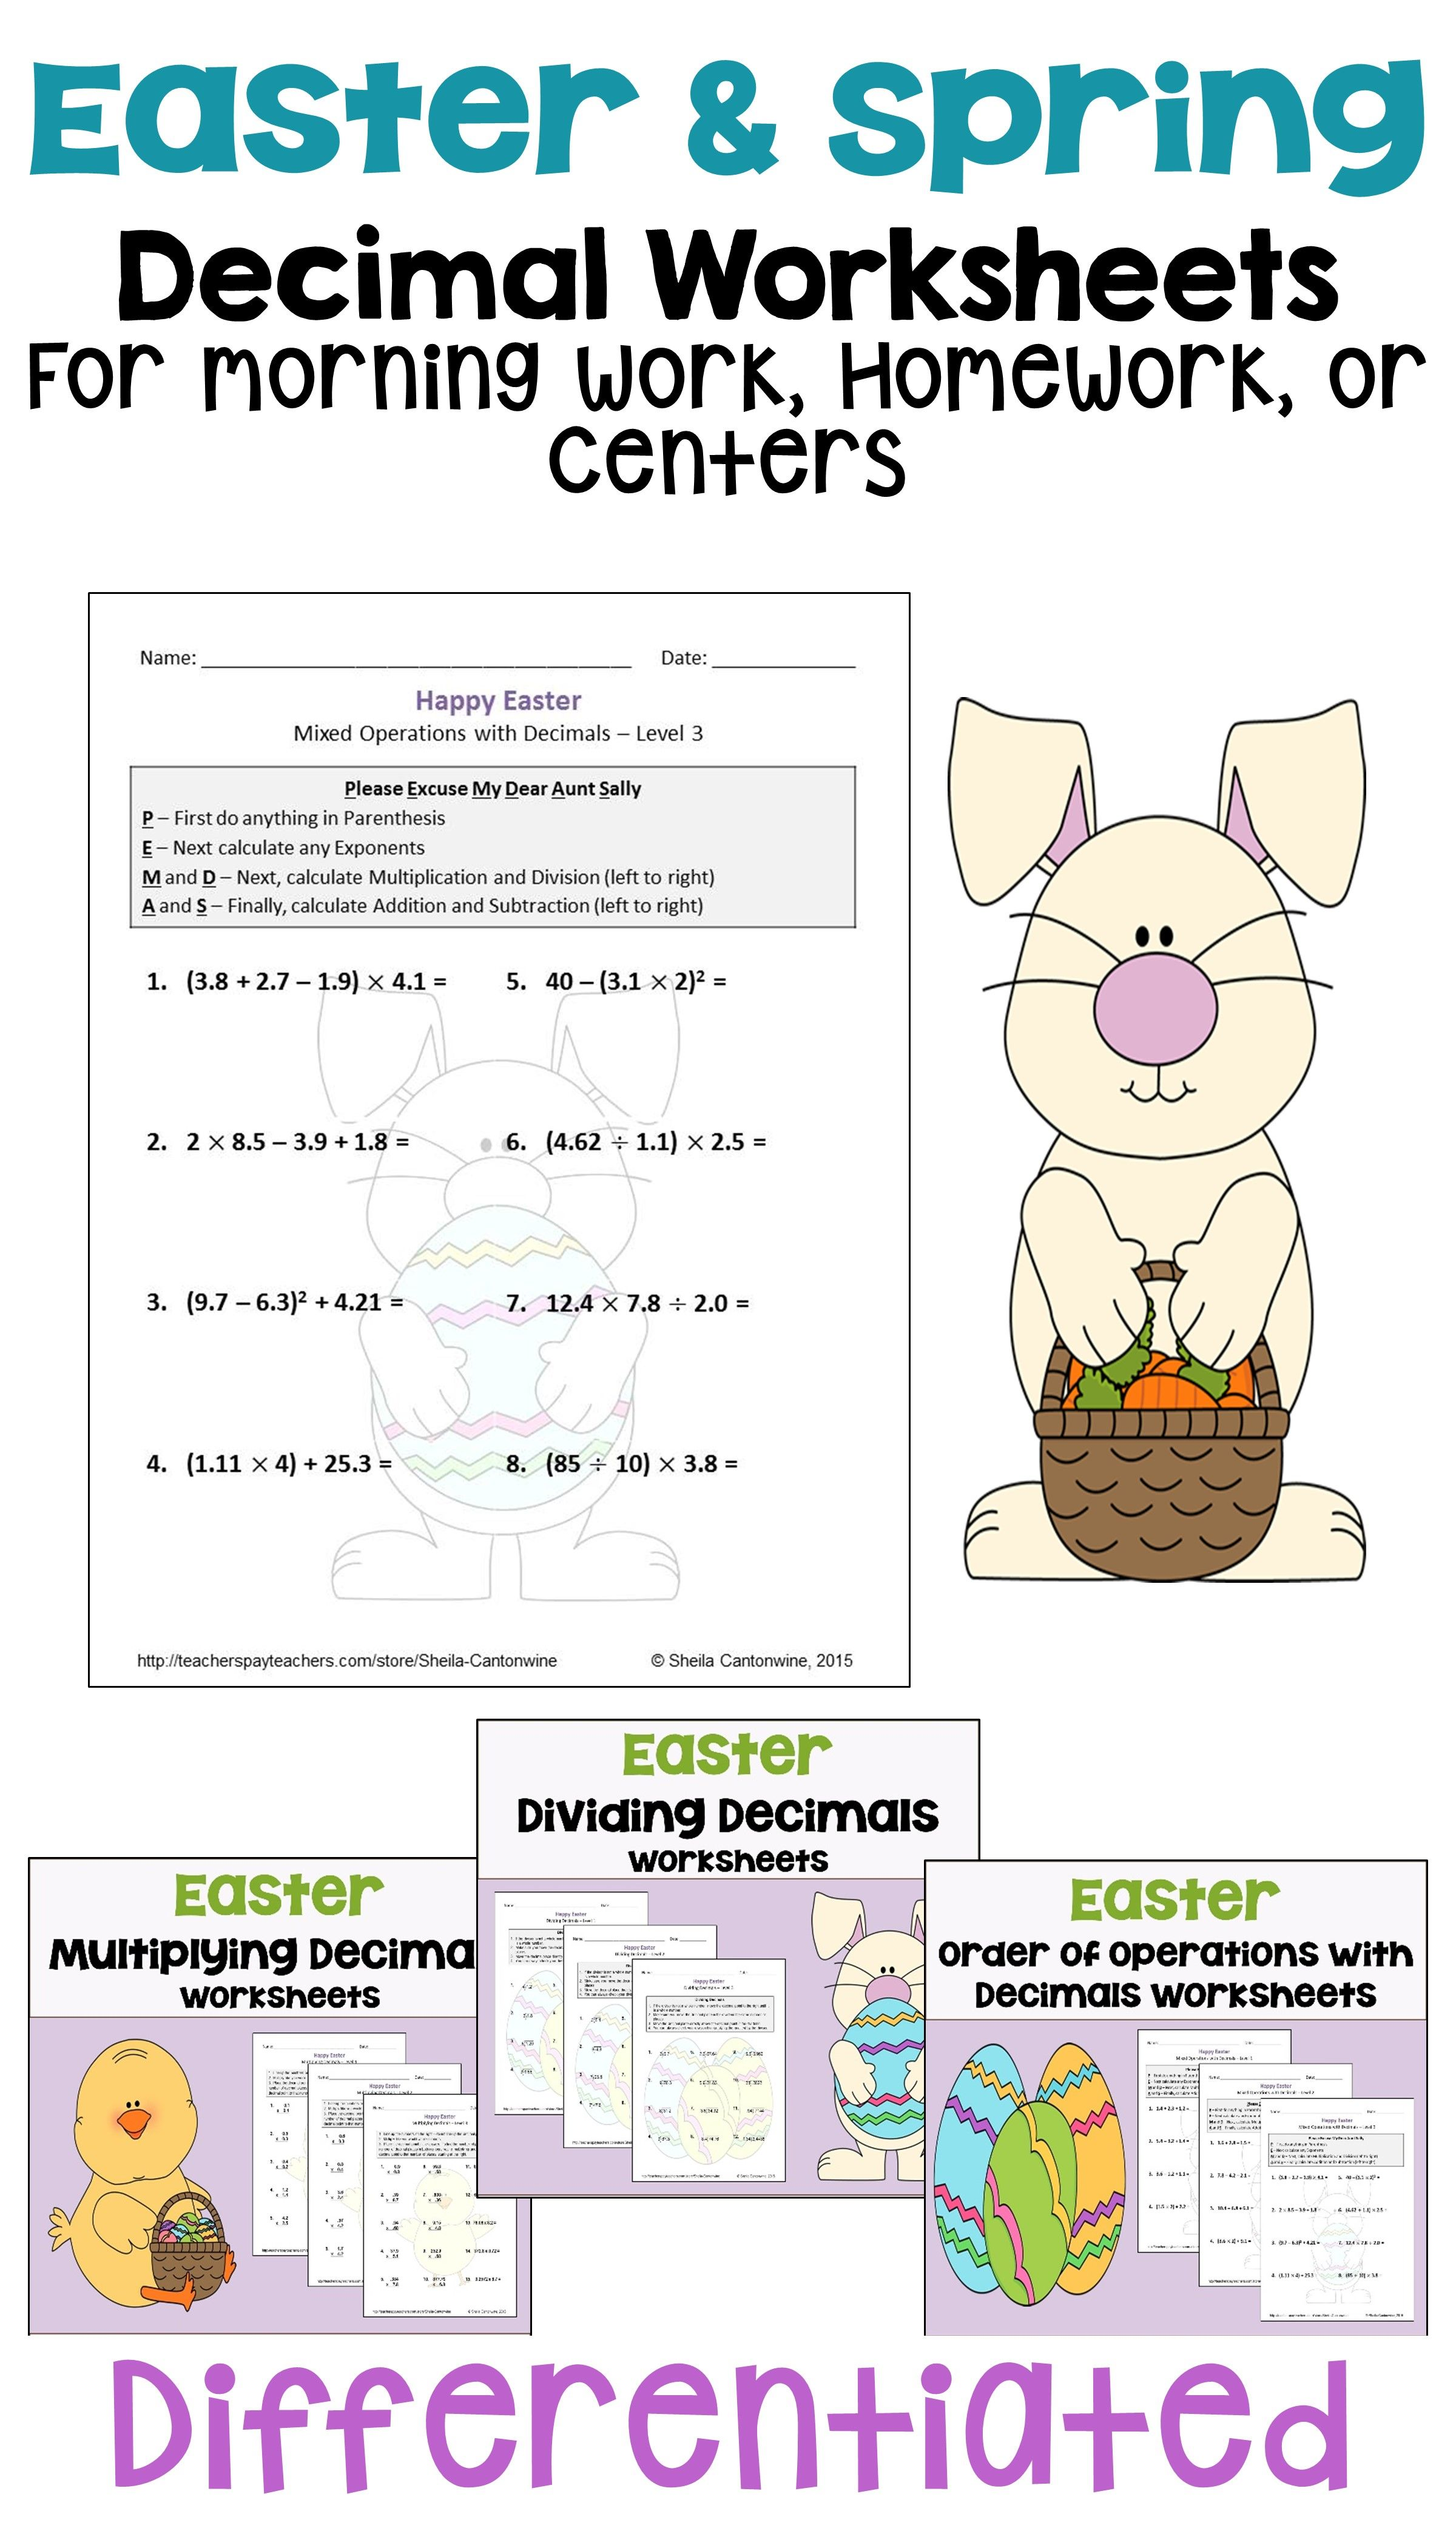 Easter Decimal Worksheet Bundle Differentiated With 3